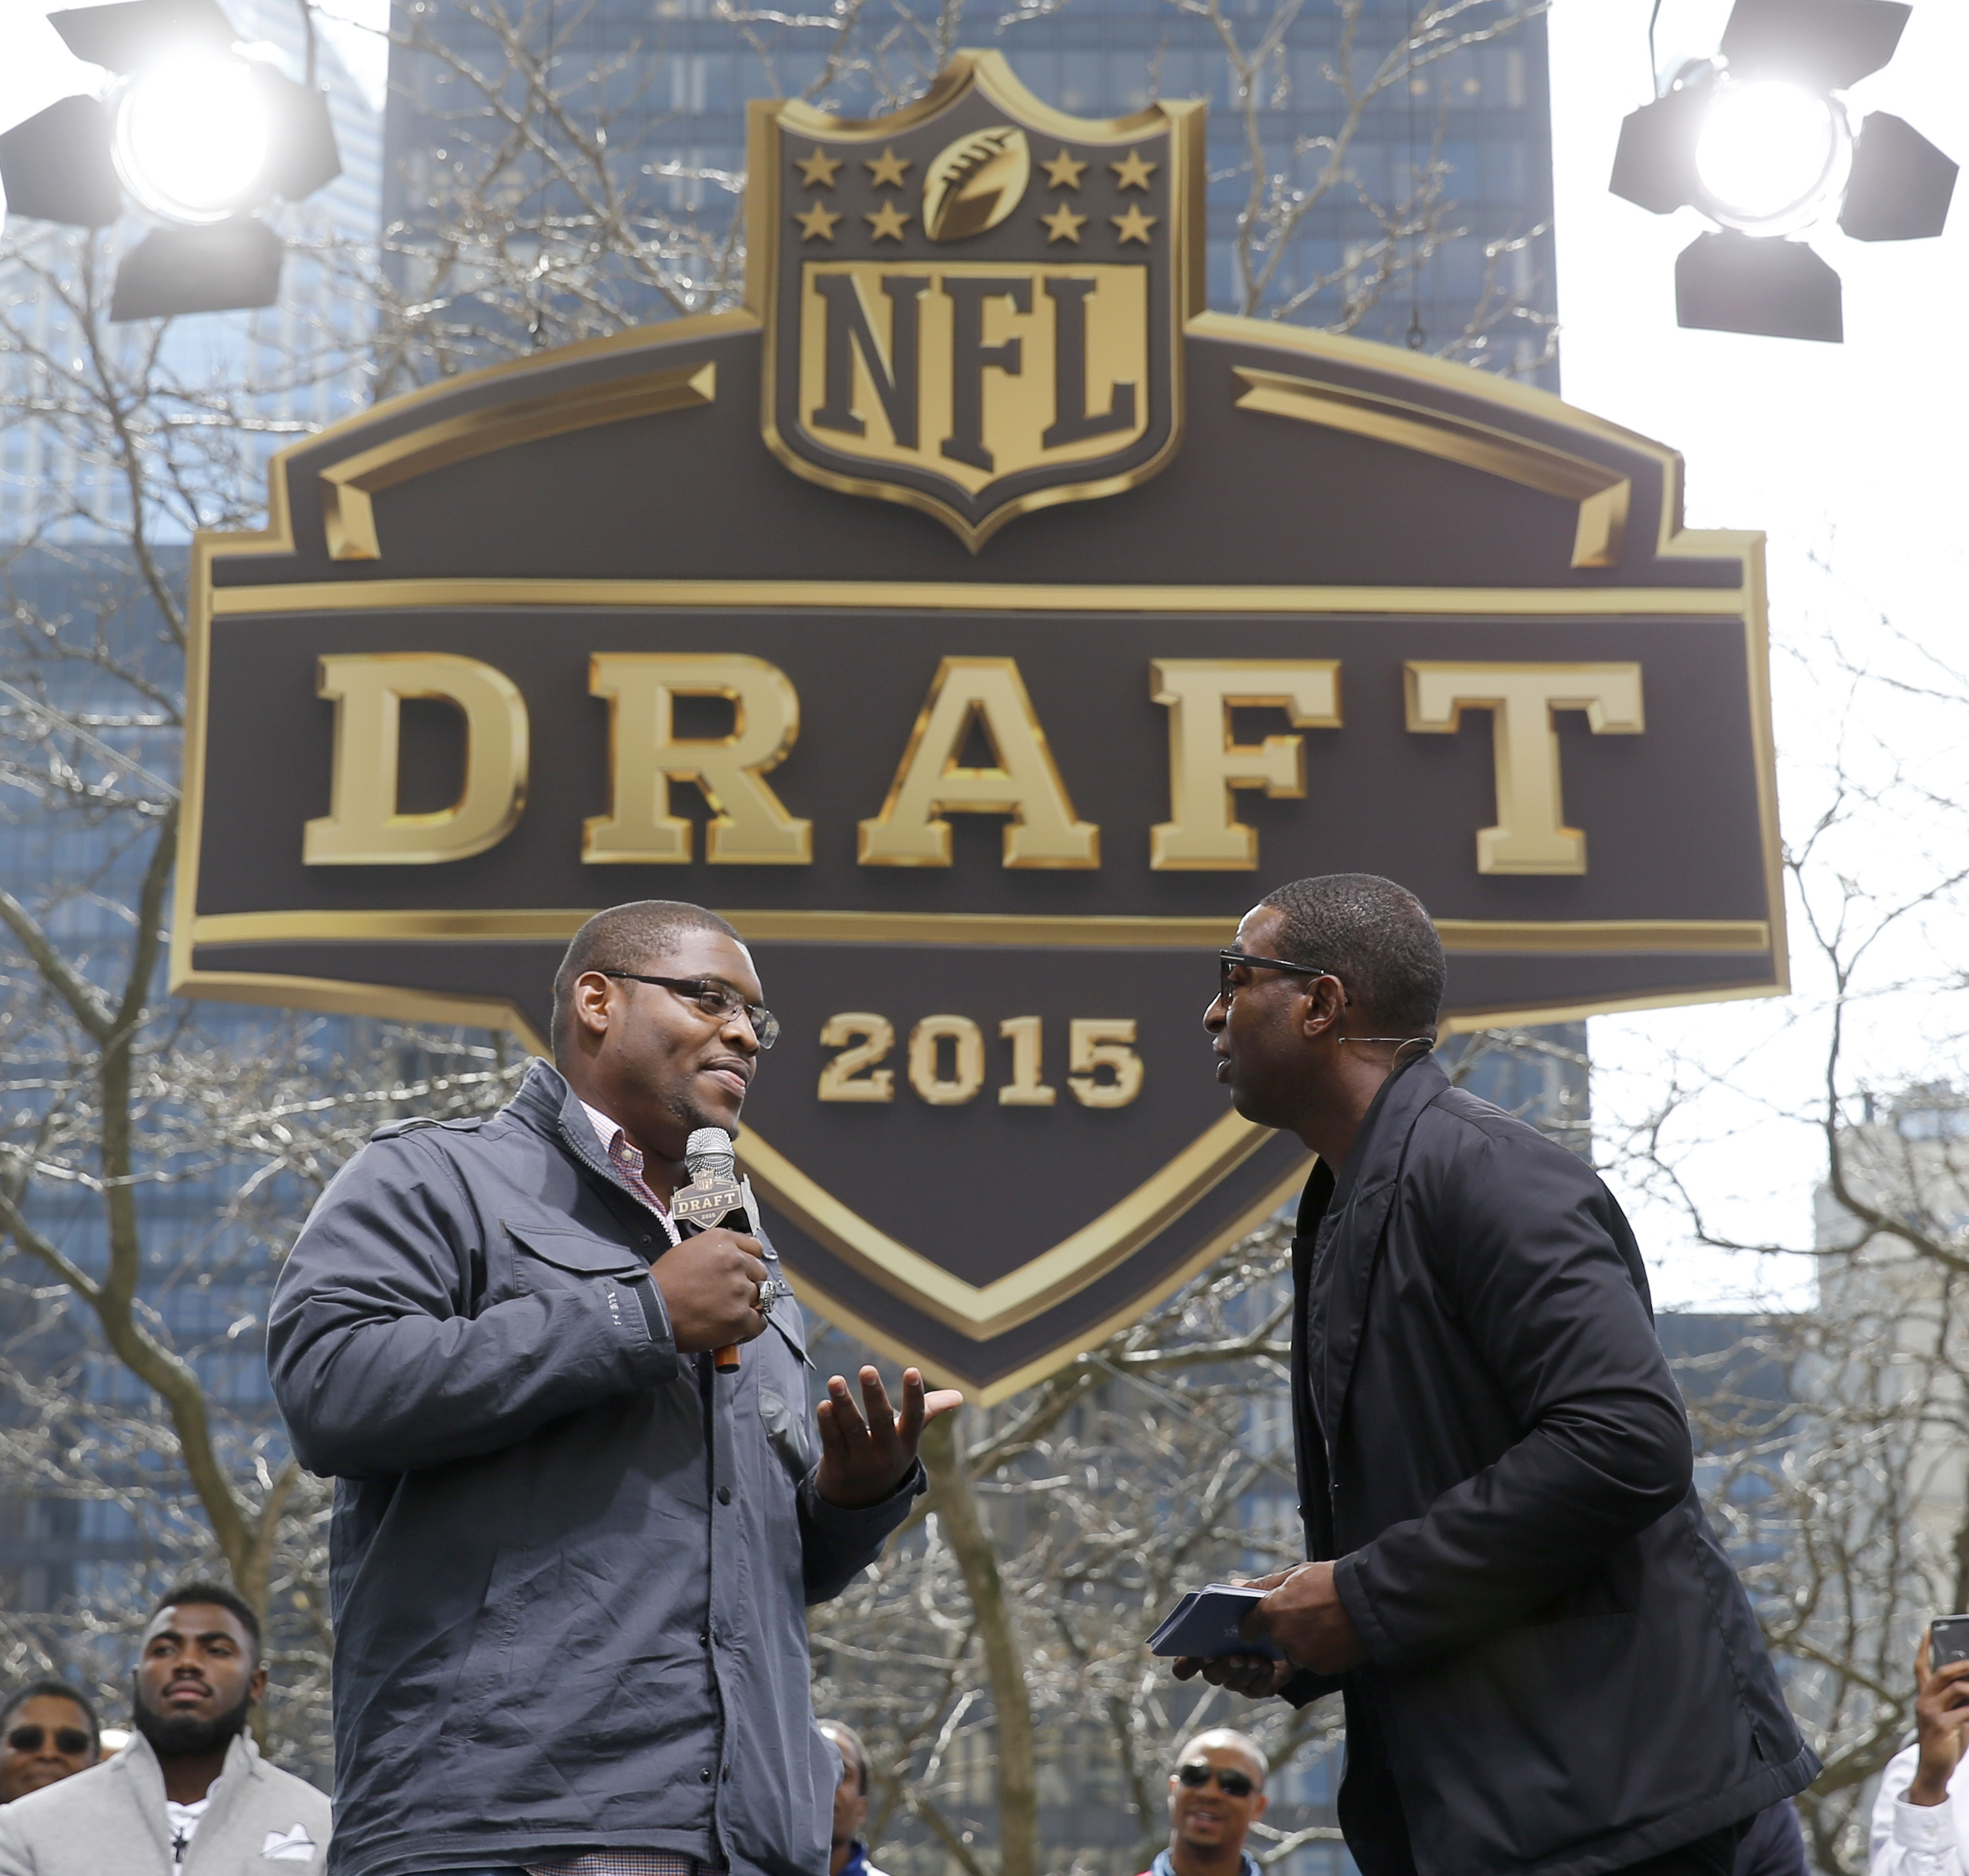 Cris Carter, right, interviews Duke's Laken Tomlinson, during introductions at a pre-draft rally of 2015 NFL Draft prospects, and various league legends at Pioneer Court, Wednesday, April 29, 2015, in Chicago. (AP Photo/Charles Rex Arbogast)